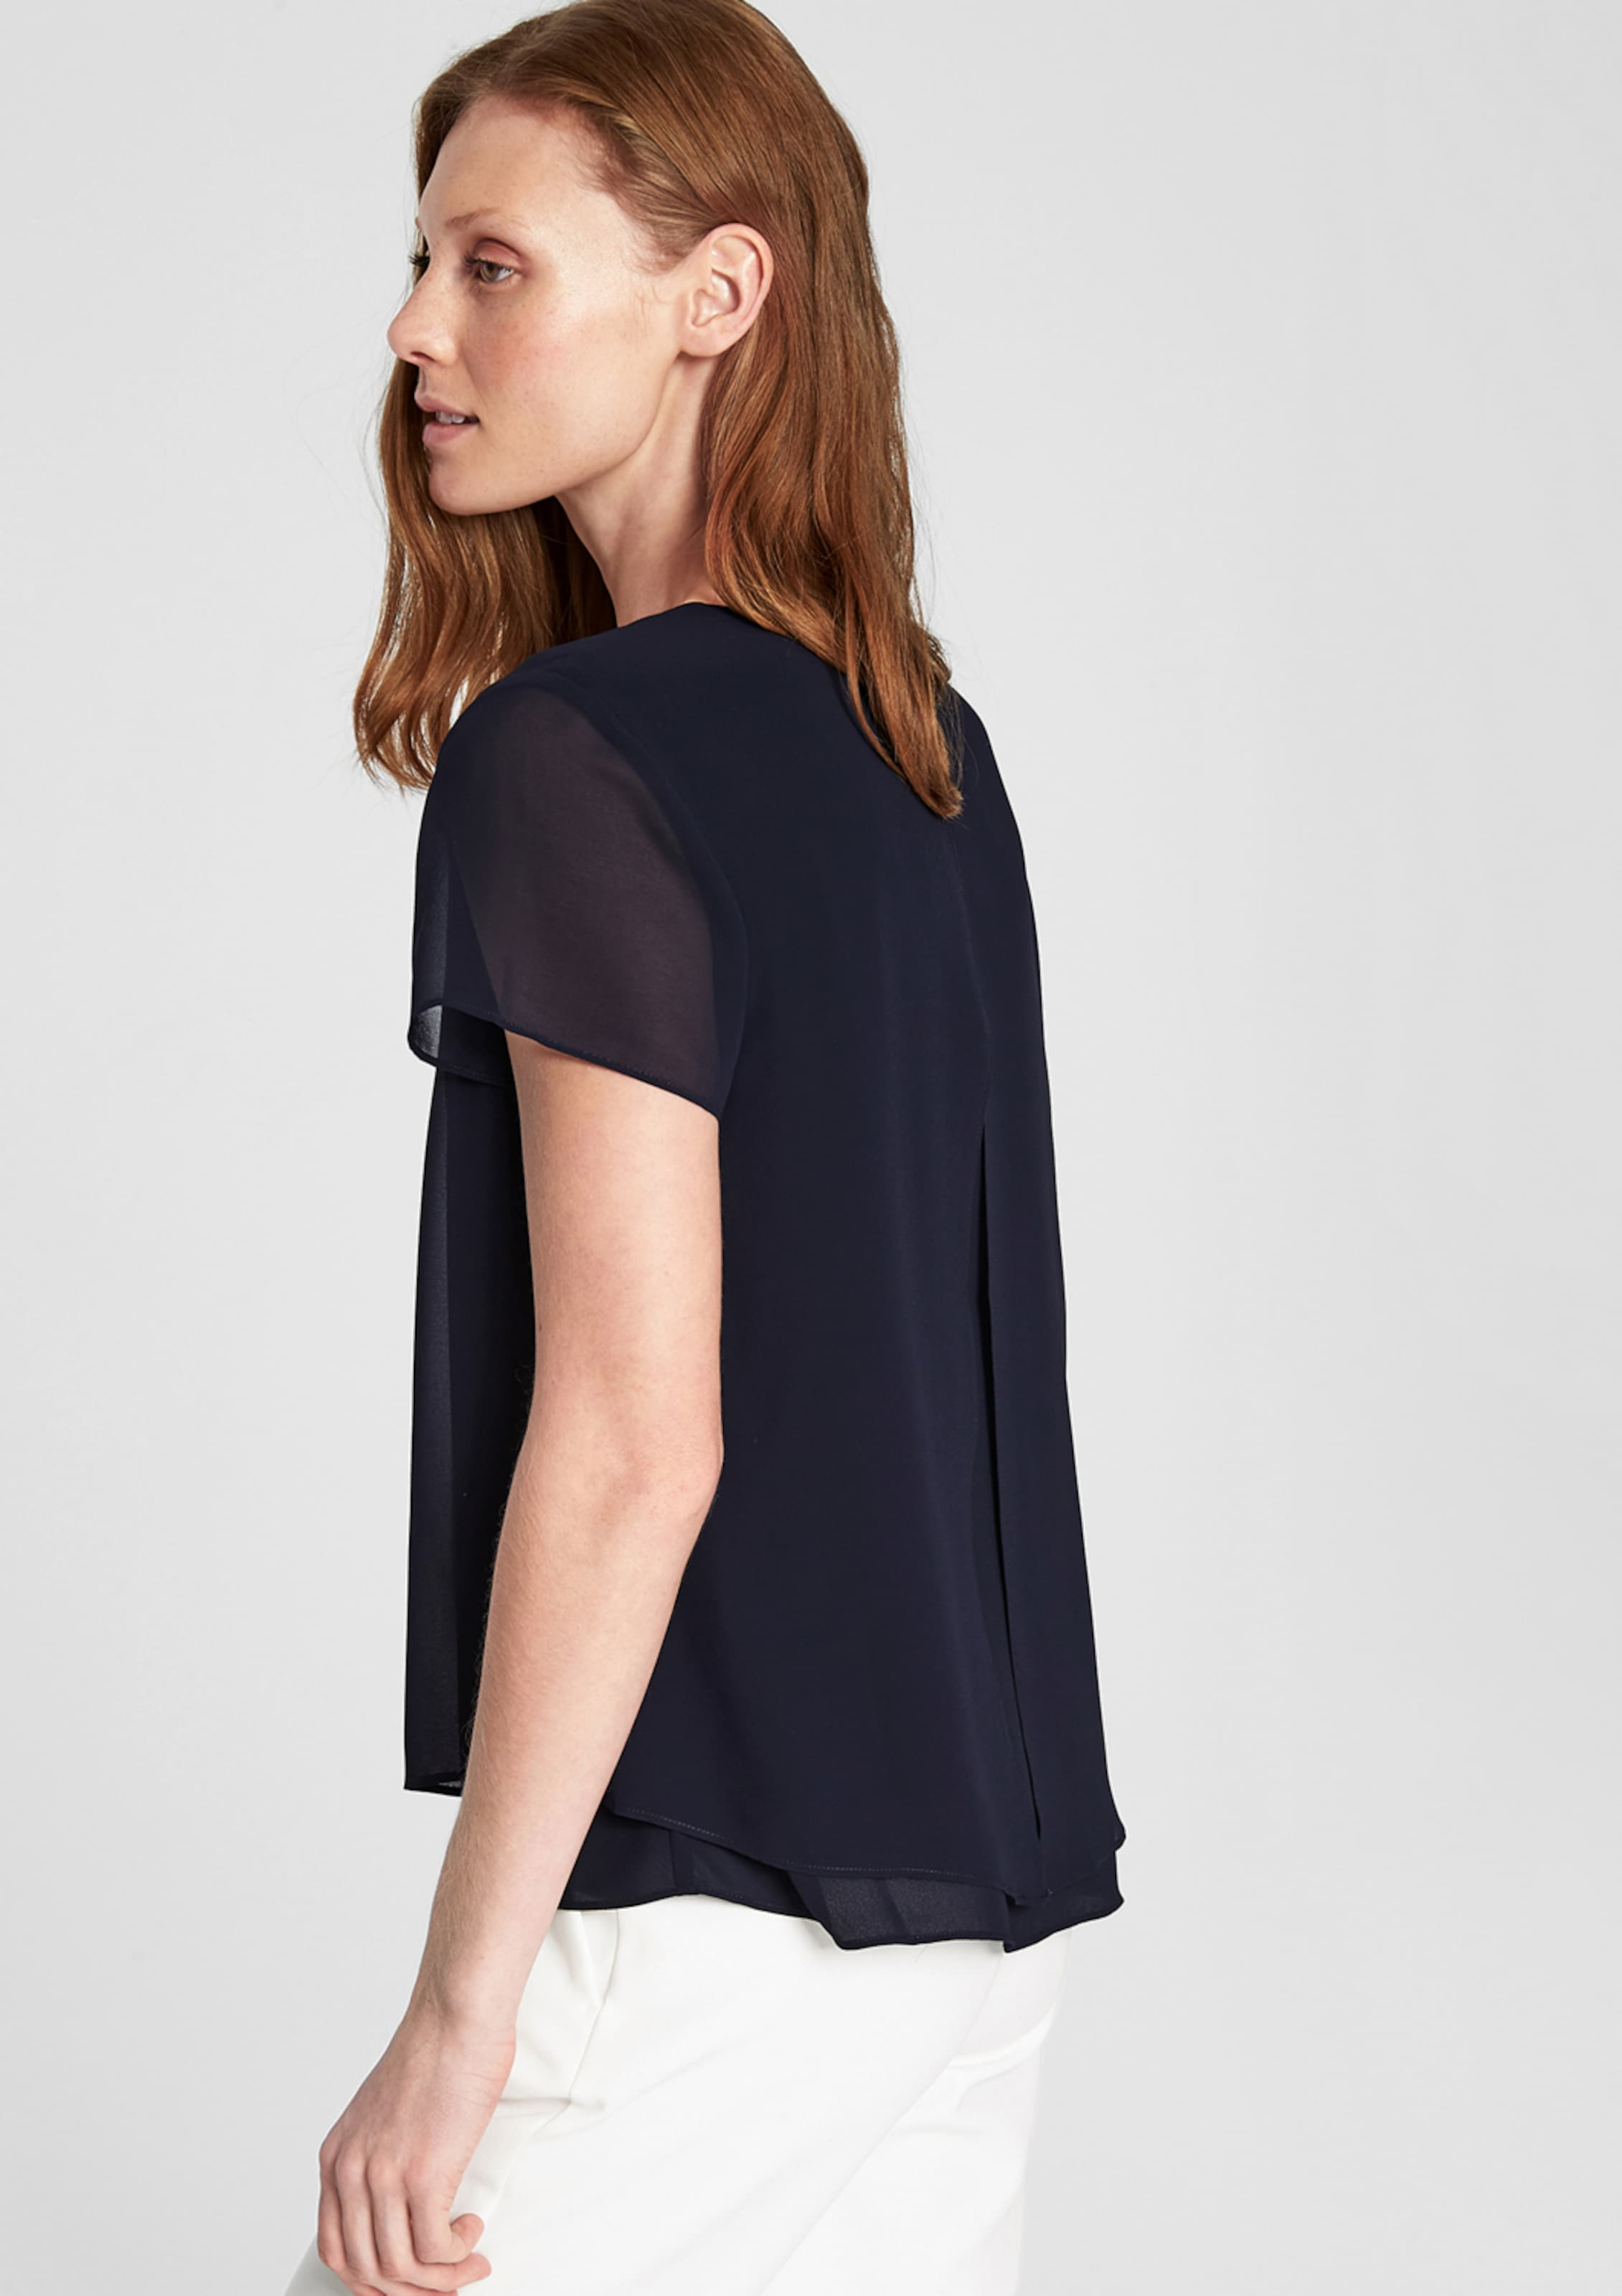 In Label oliver Black Chiffonbluse S Nachtblau OPuiTwkXZ